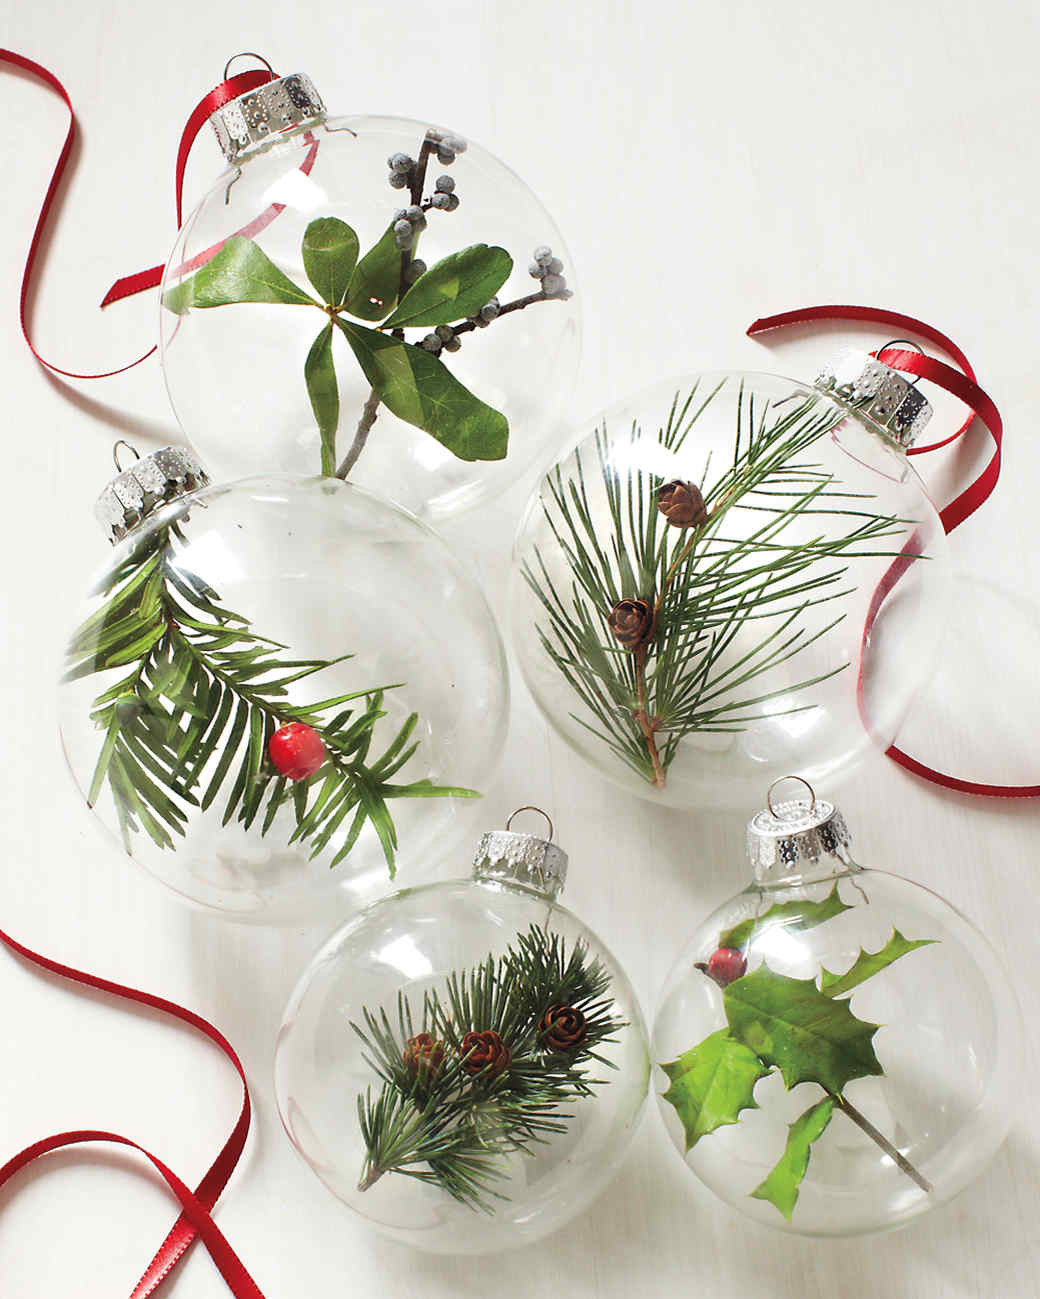 Best ideas about DIY Christmas Balls . Save or Pin 20 of Our Most Memorable DIY Christmas Ornament Projects Now.